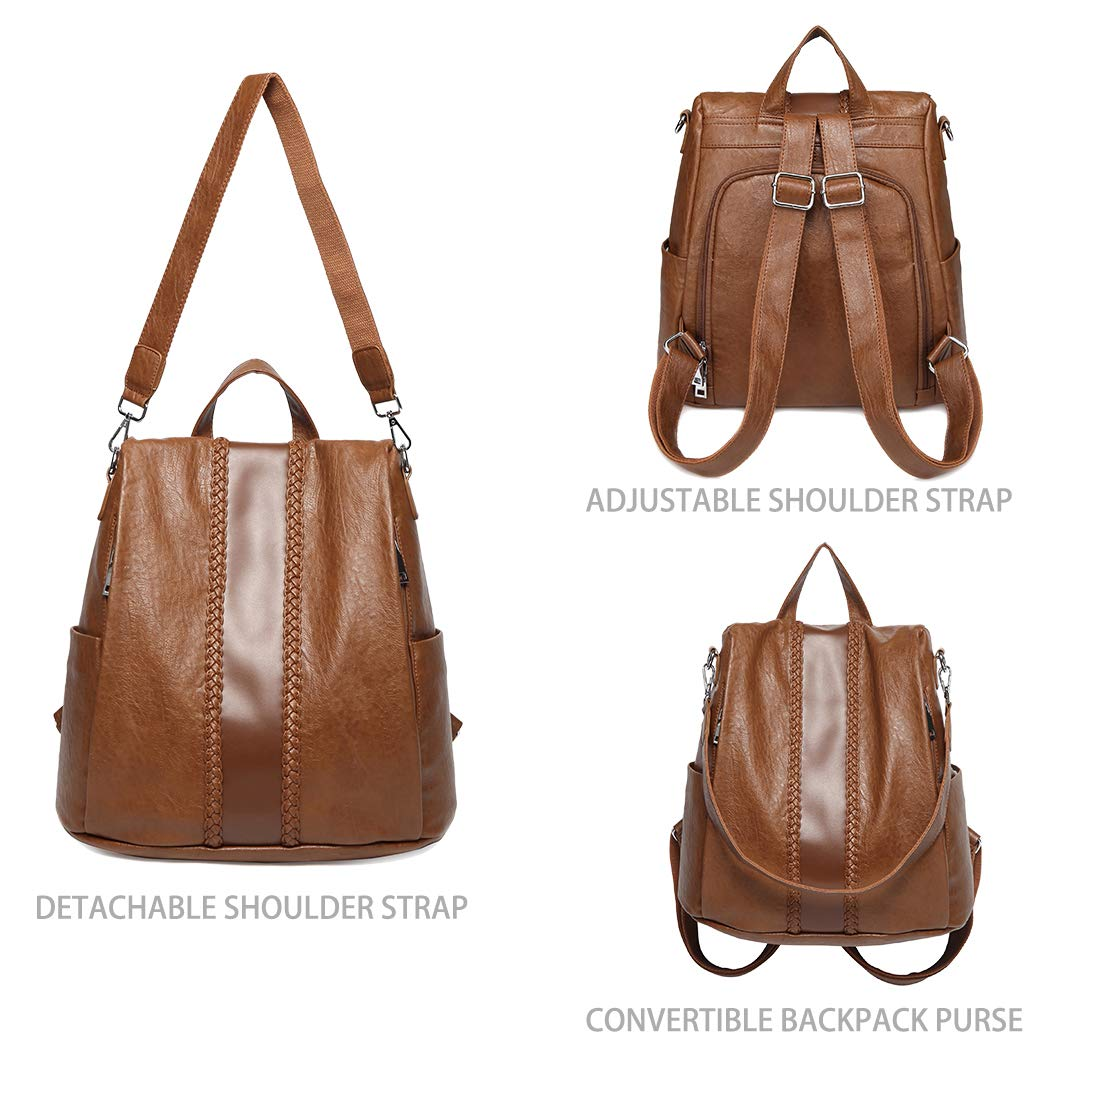 Backpack Purse for Women,VASCHY Fashion Faux Leather Convertible Anti-theft Backpack for Ladies with Vintage Weave Brown by VASCHY (Image #6)